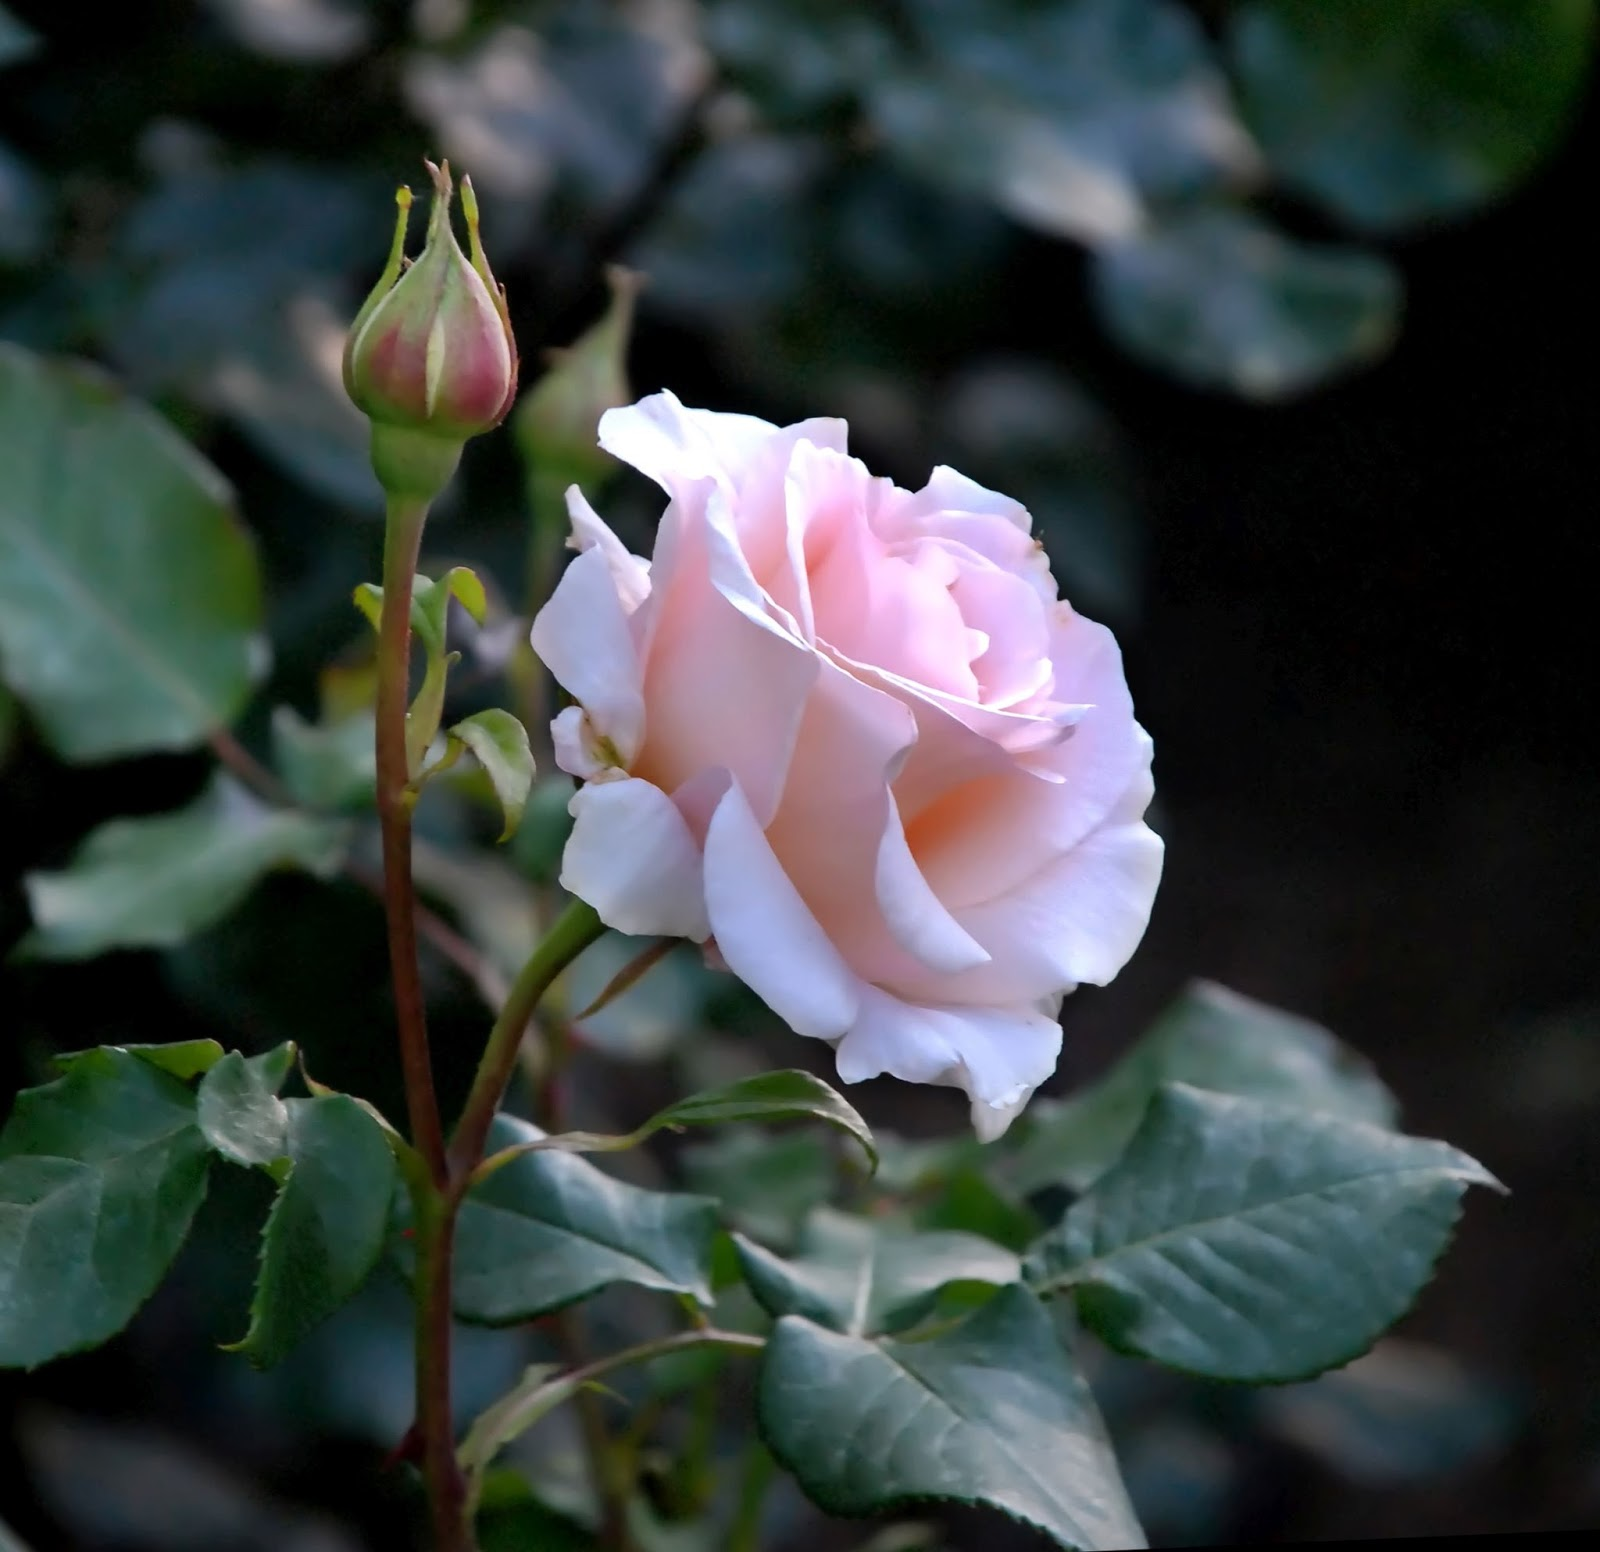 The+Rose+Reference+Photo.jpg 1,600×1,552 pixels   Beautiful flowers, Rose reference, Rose